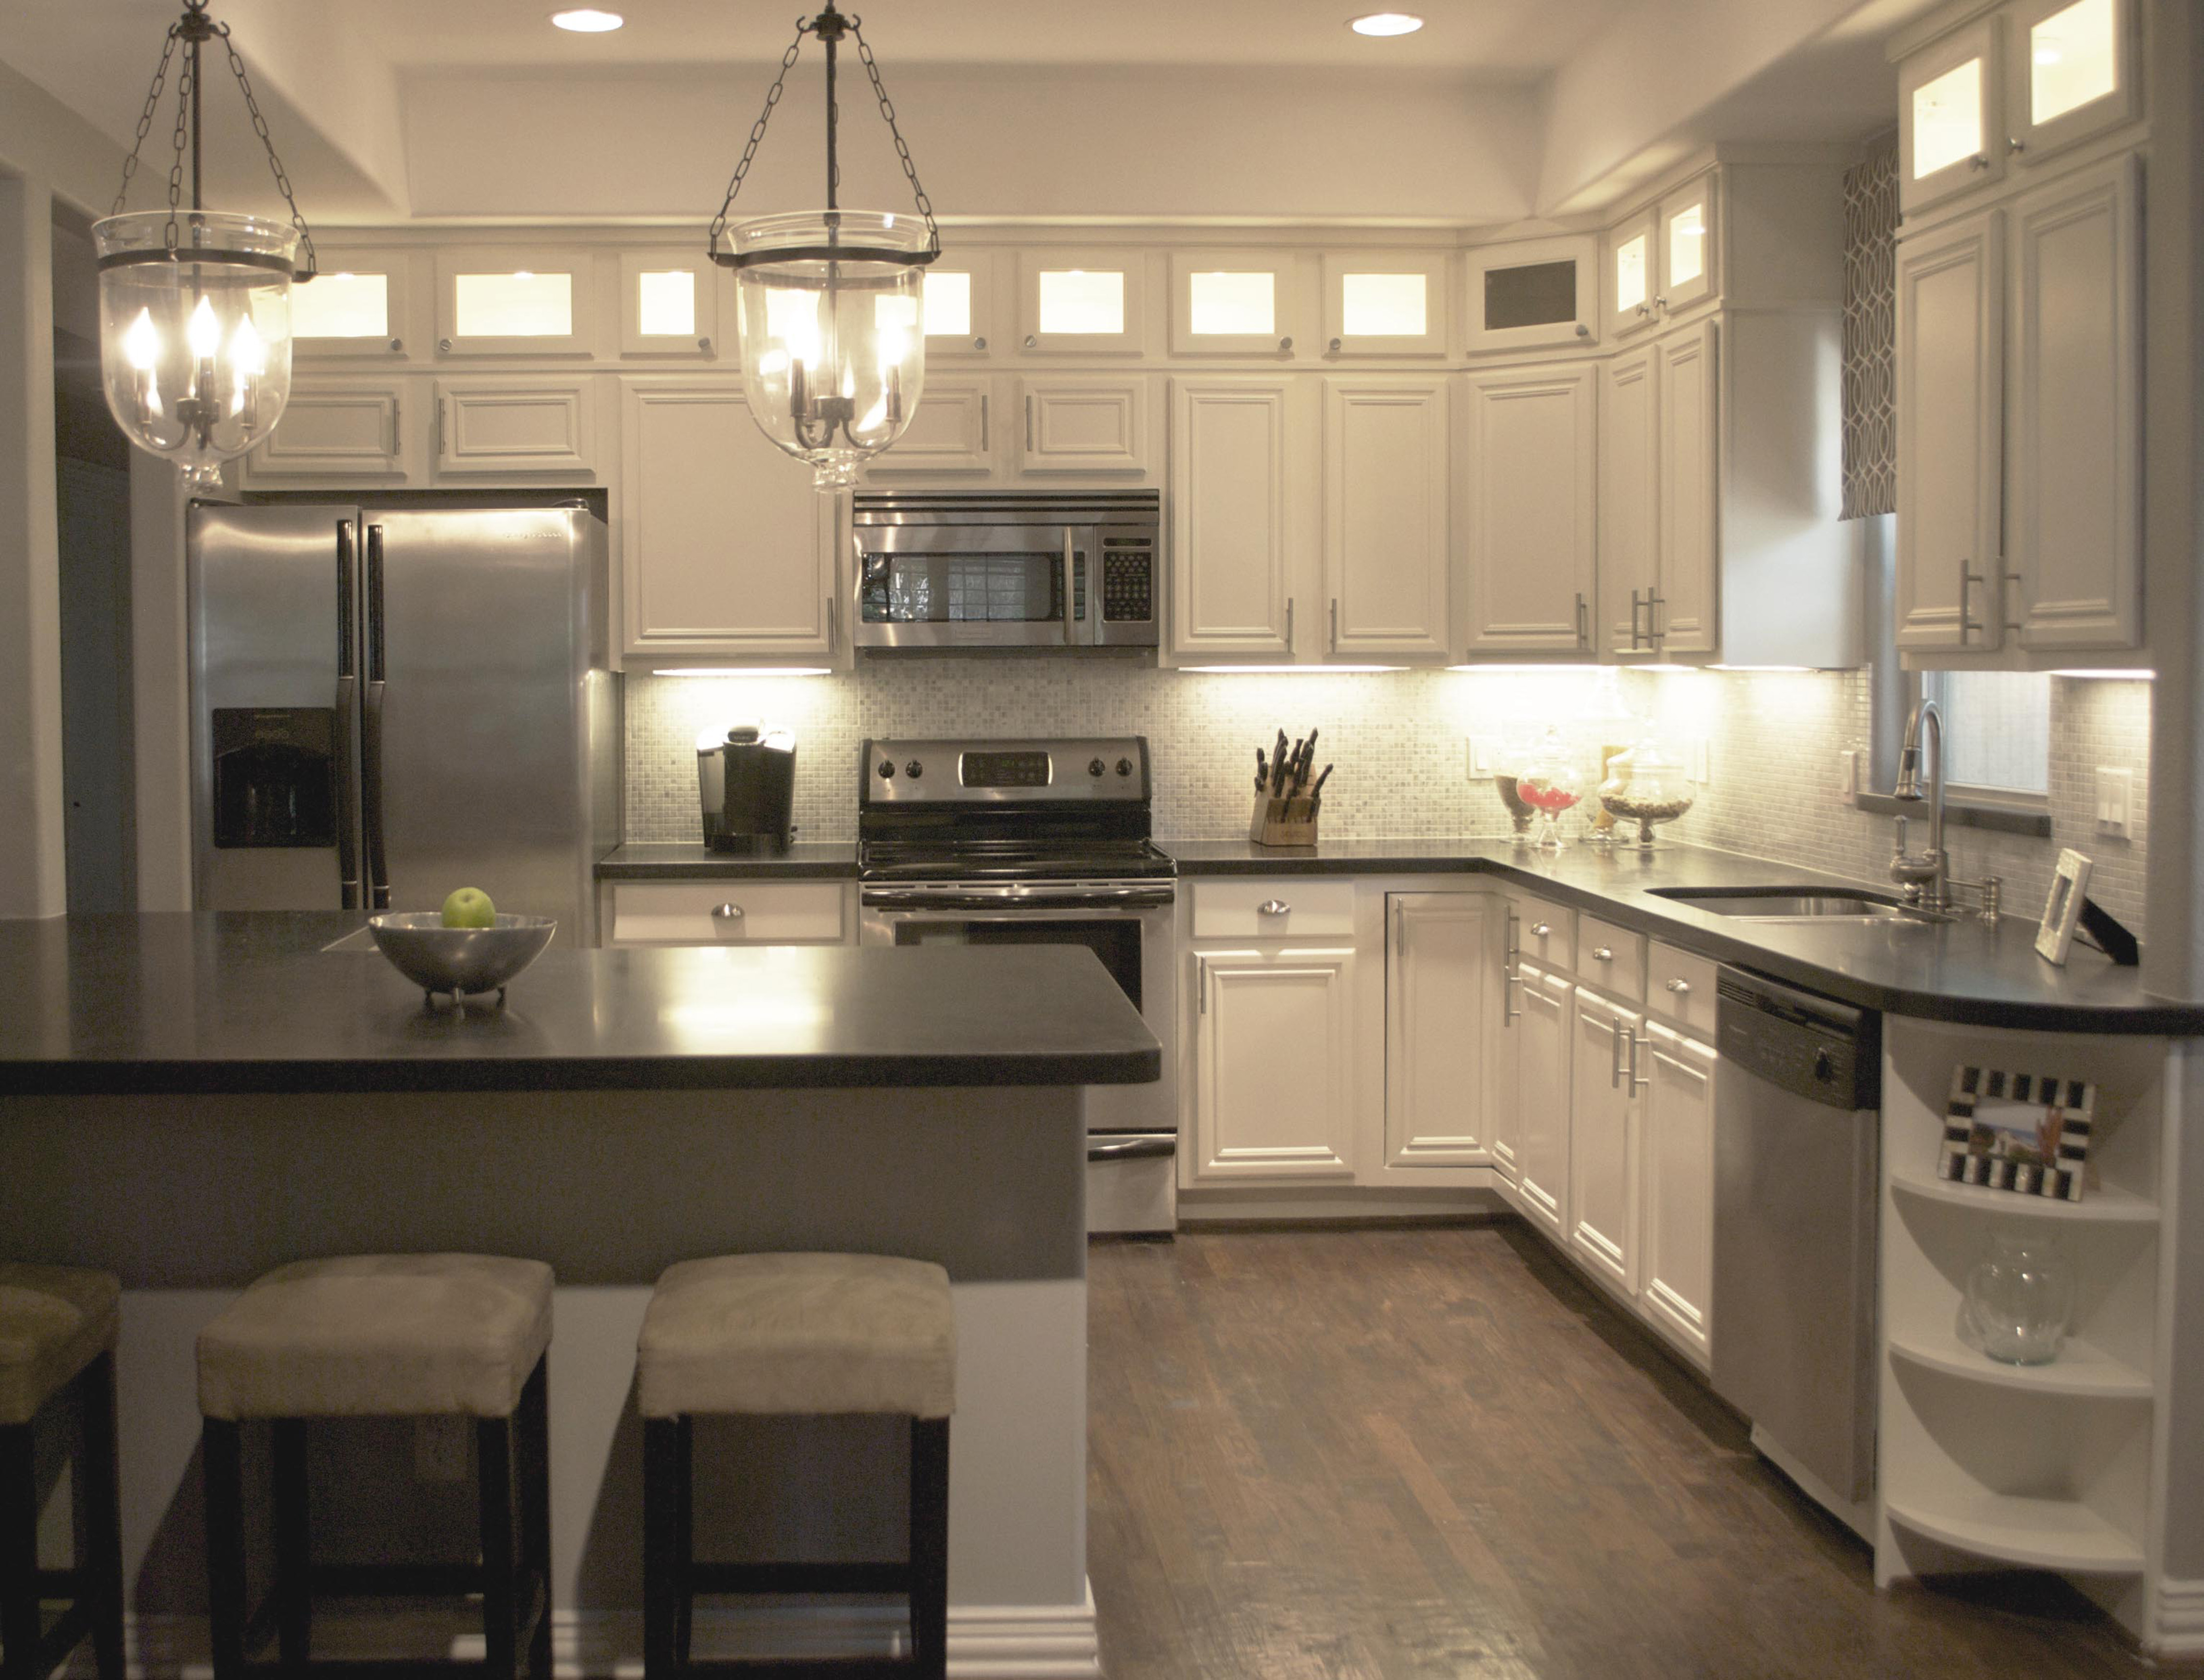 northernvalleyconstructioninc kitchen remodels CONSTRUCTION RESOURCE CENTER